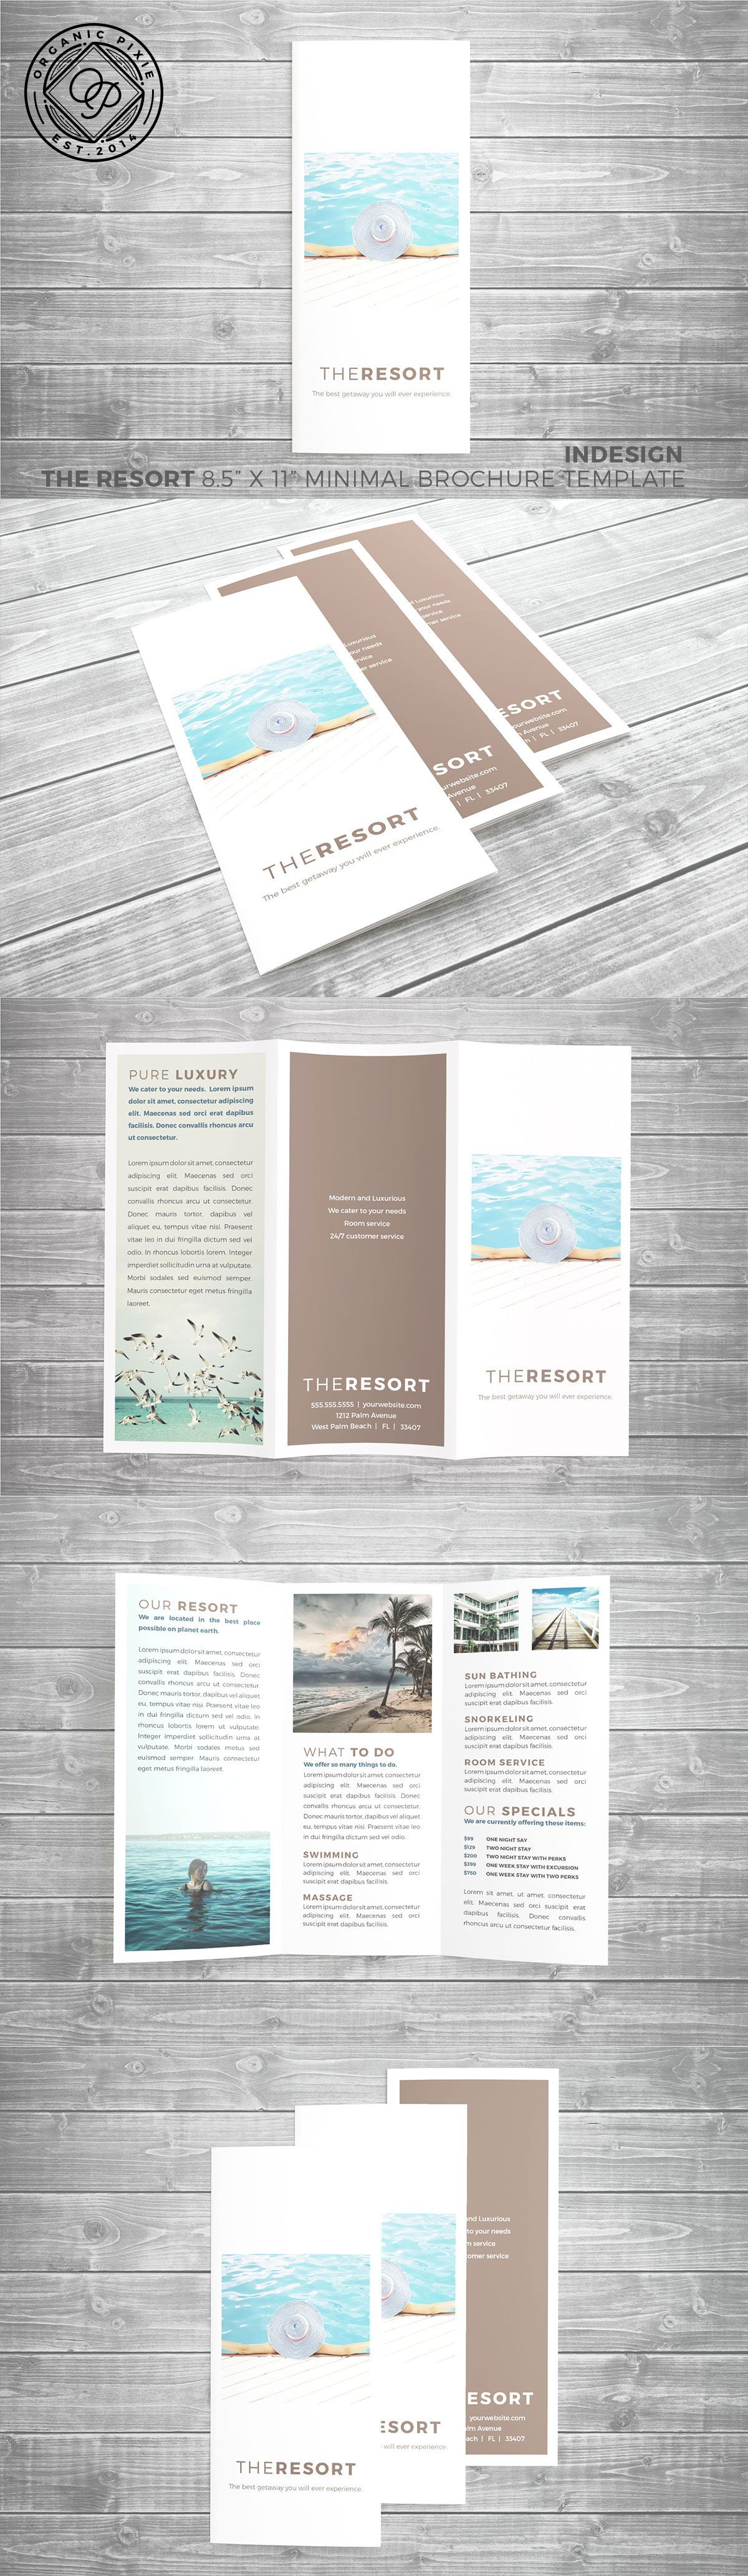 this is an easy to use turn key vertical brochure design template in